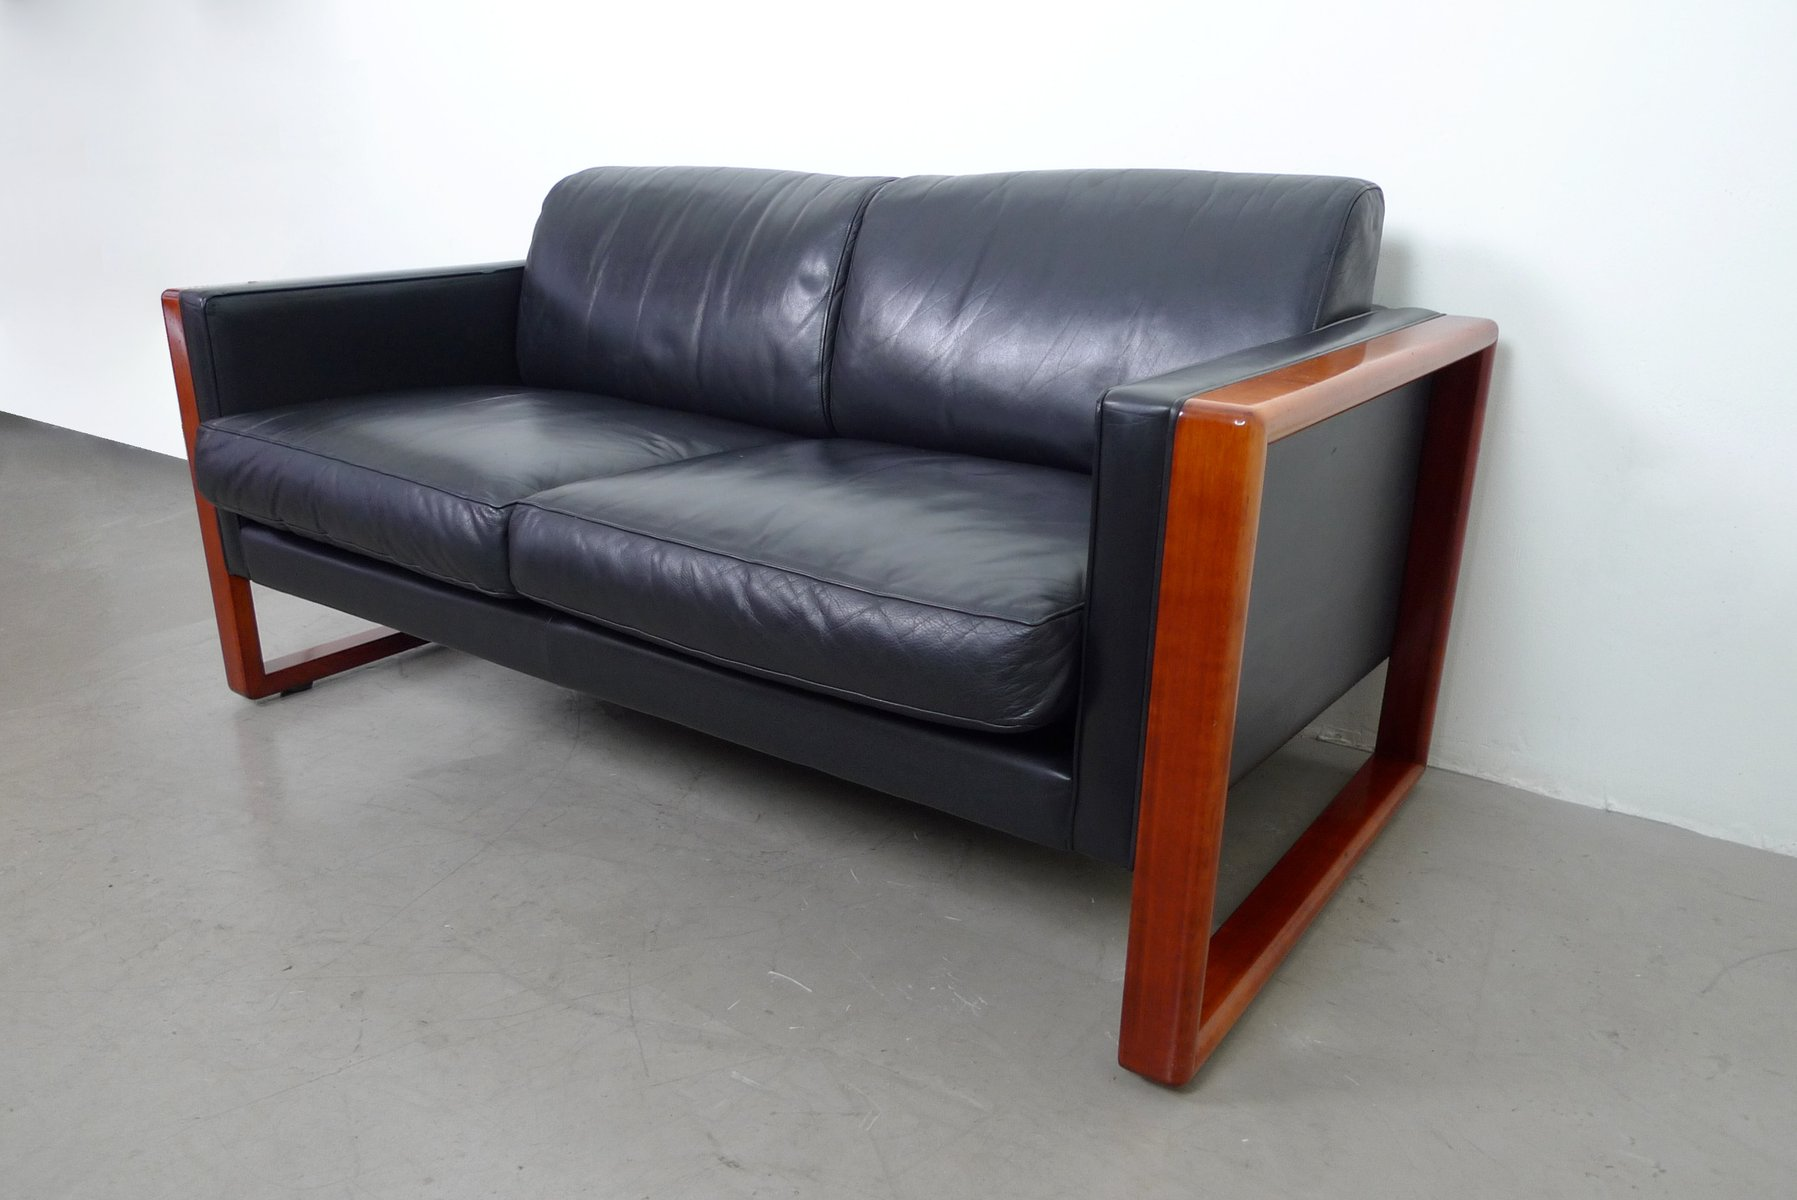 2Seater Leather Sofa from Walter Knoll 1960s for sale at Pamono